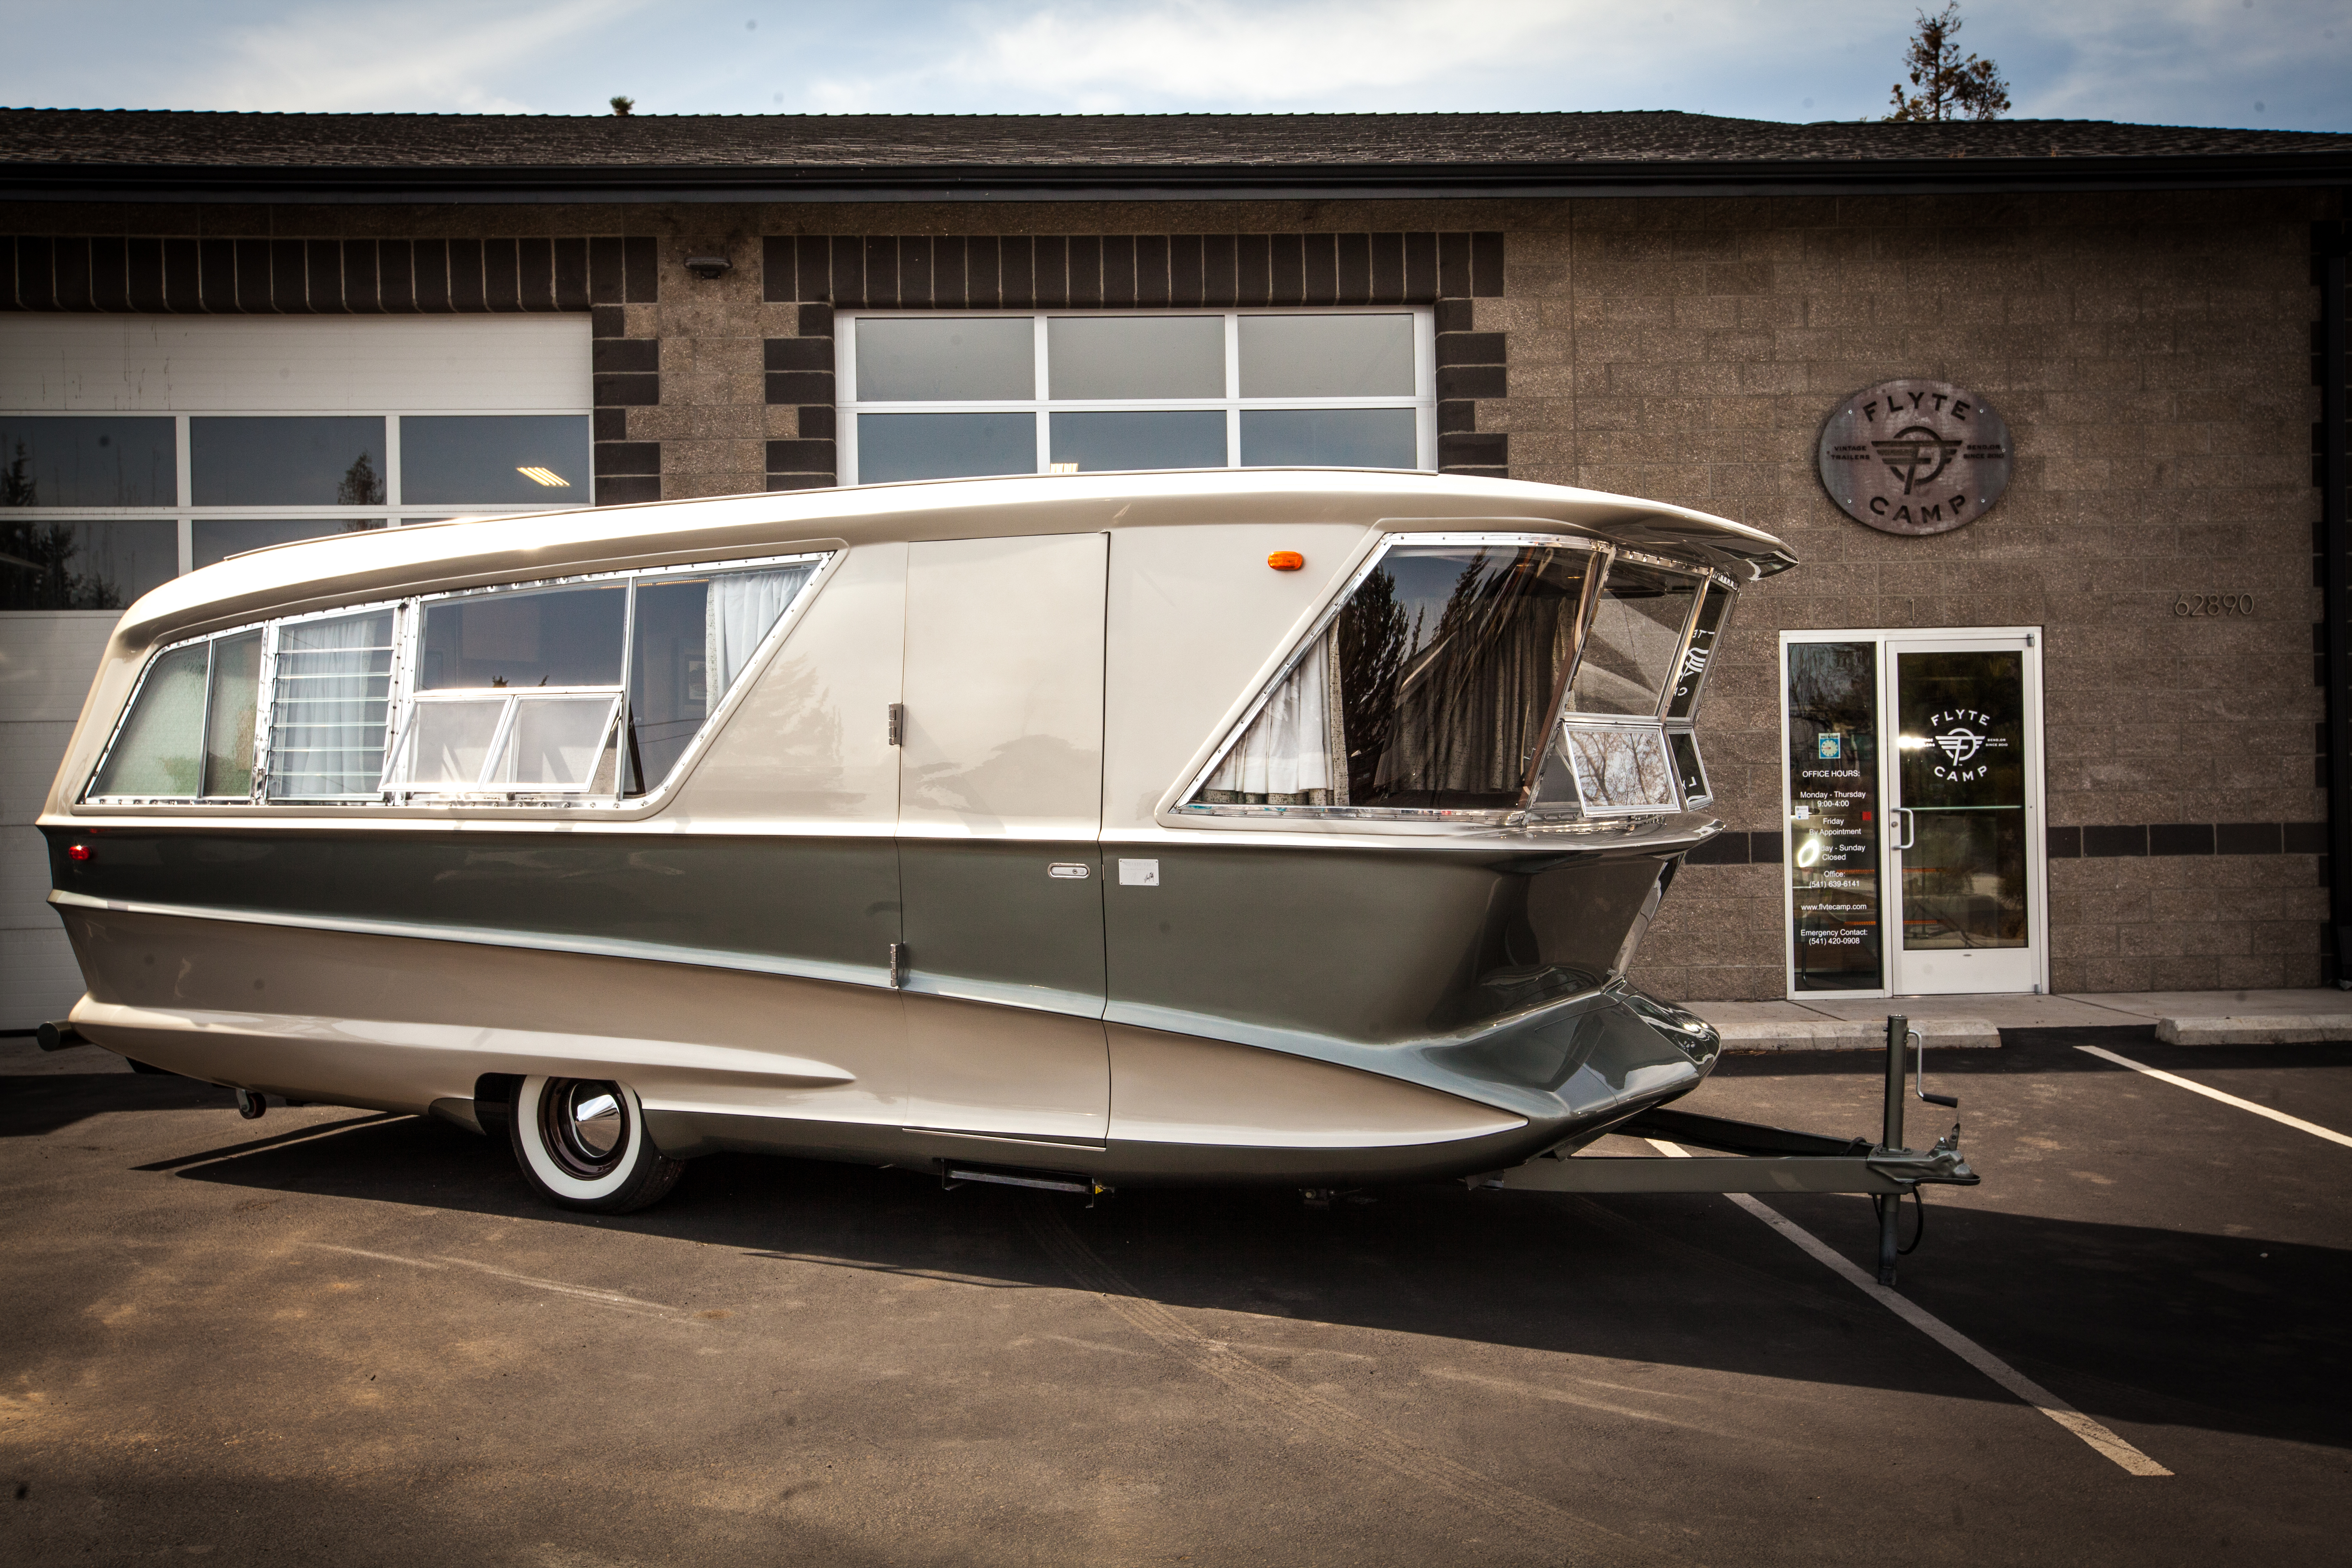 The 7 best camper trailers of 2018